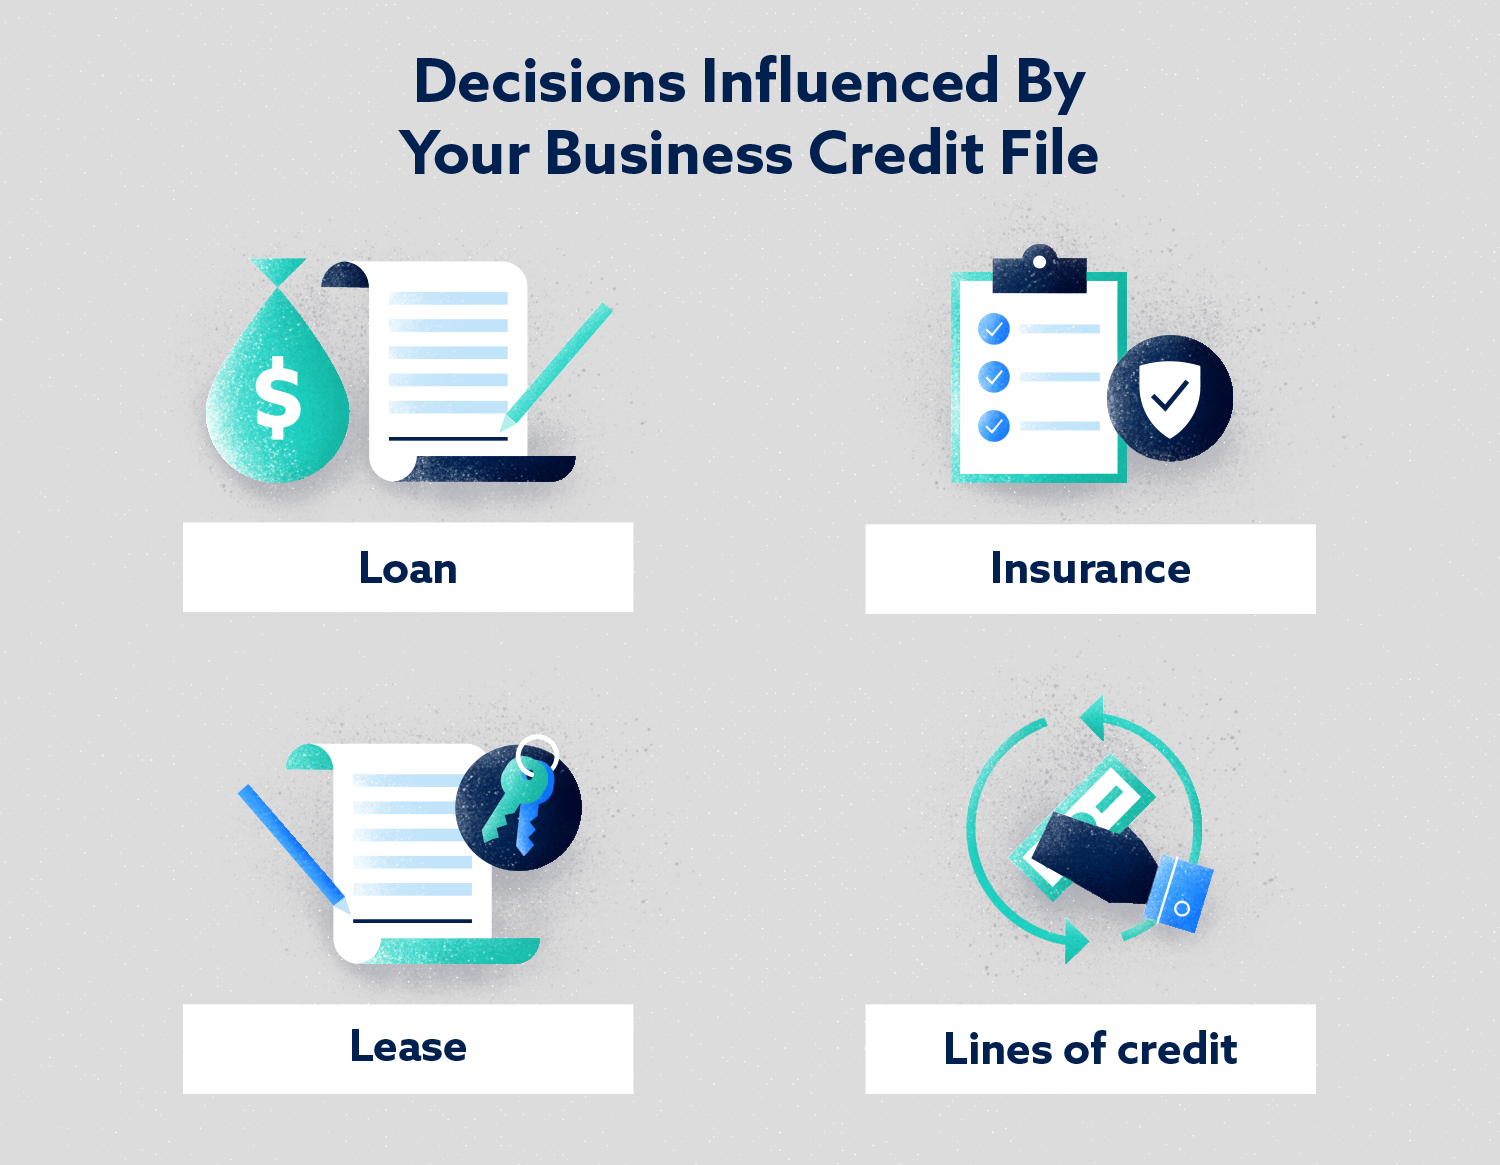 Decisions Influenced by your Business Credit File image